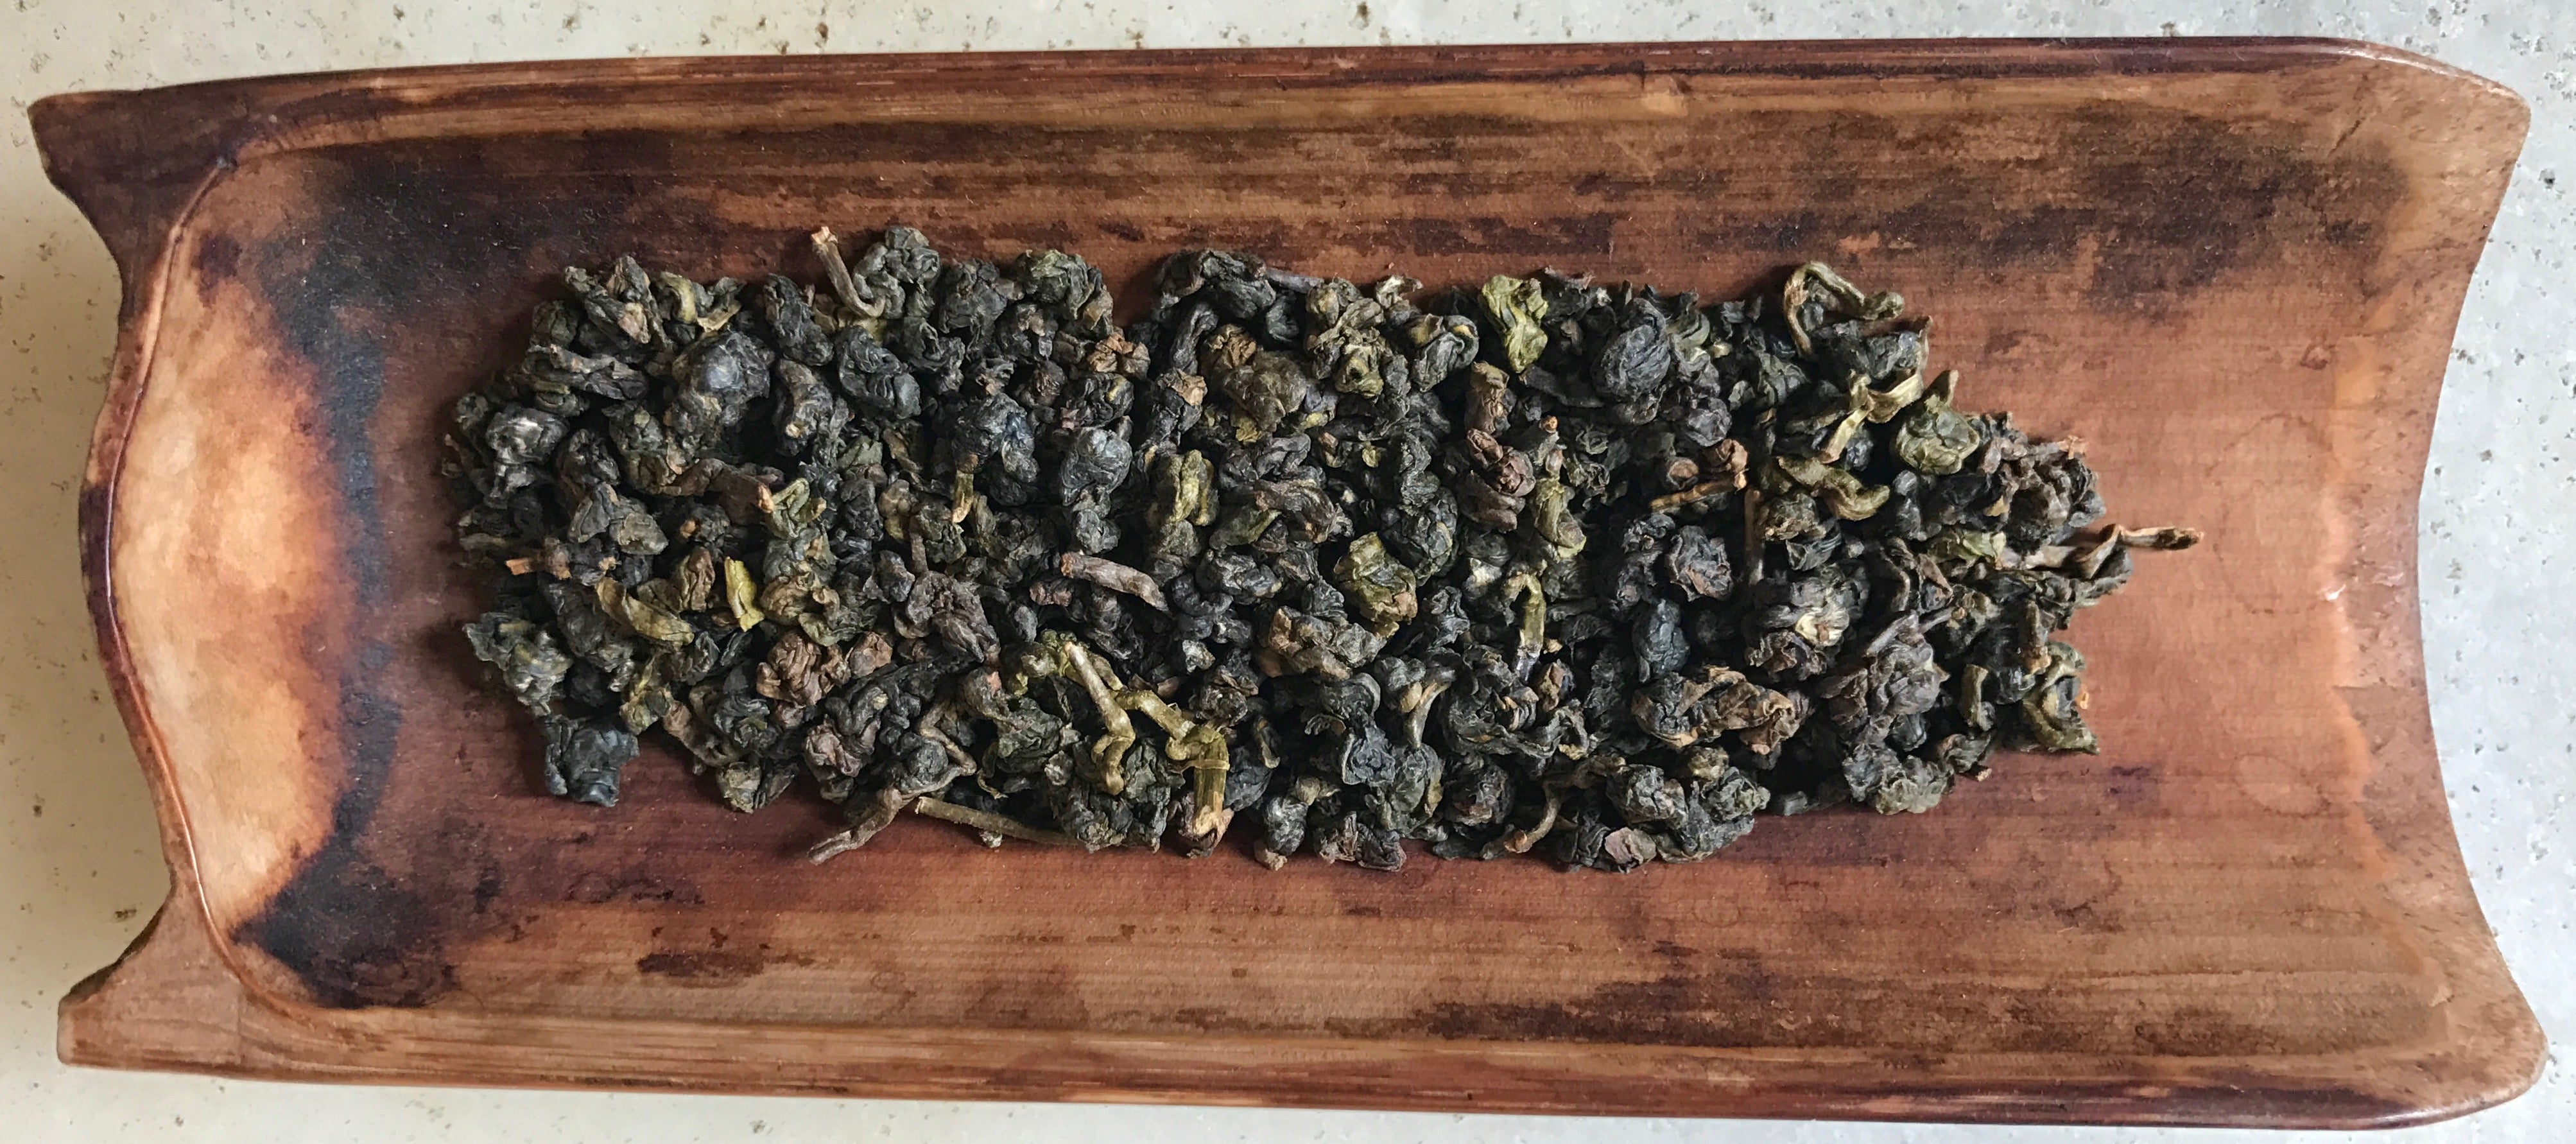 Honey Fragrance Oolong Tea